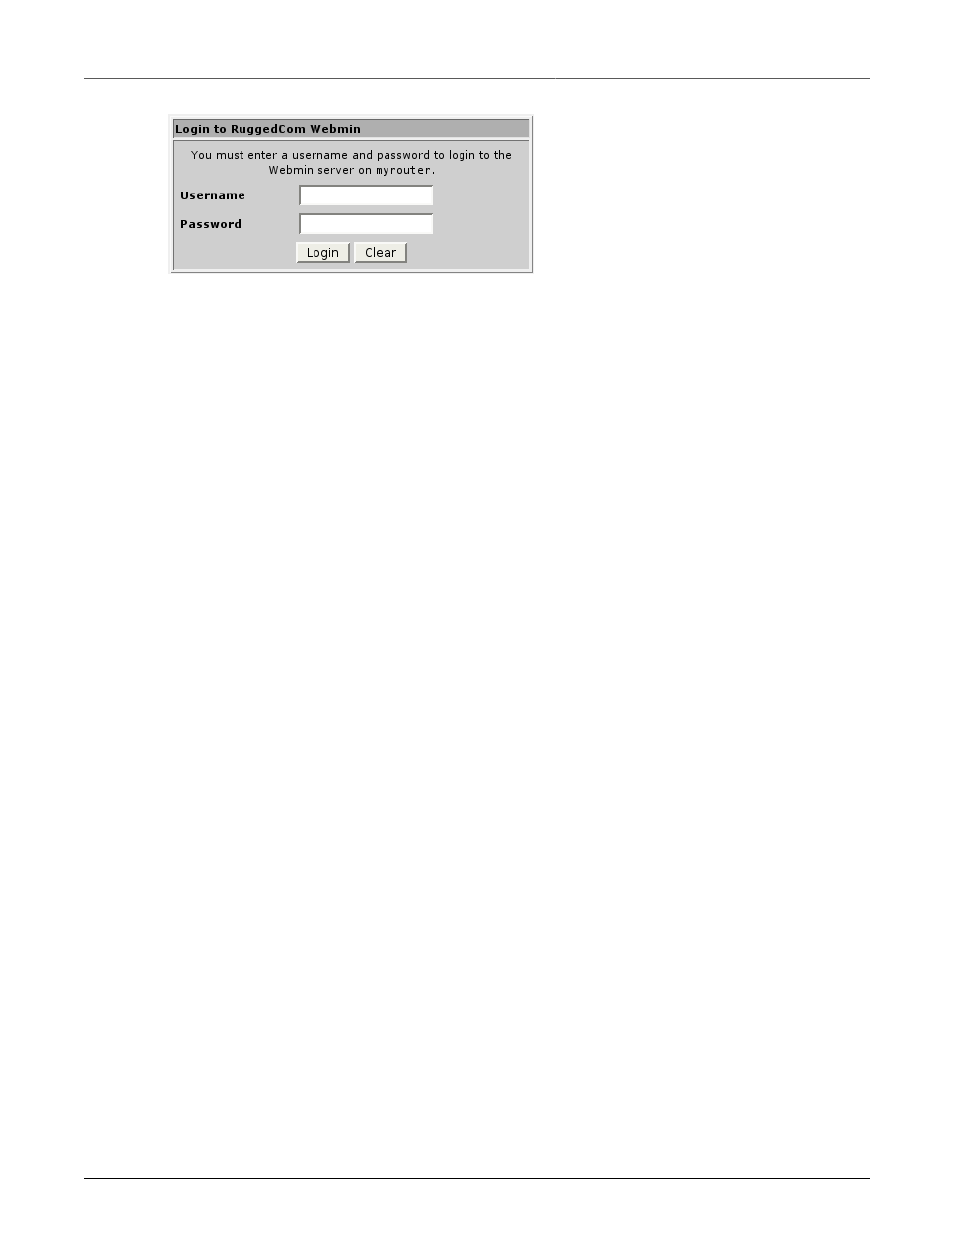 Ssl Certificate Warnings The Structure Of The Web Interface 30 14